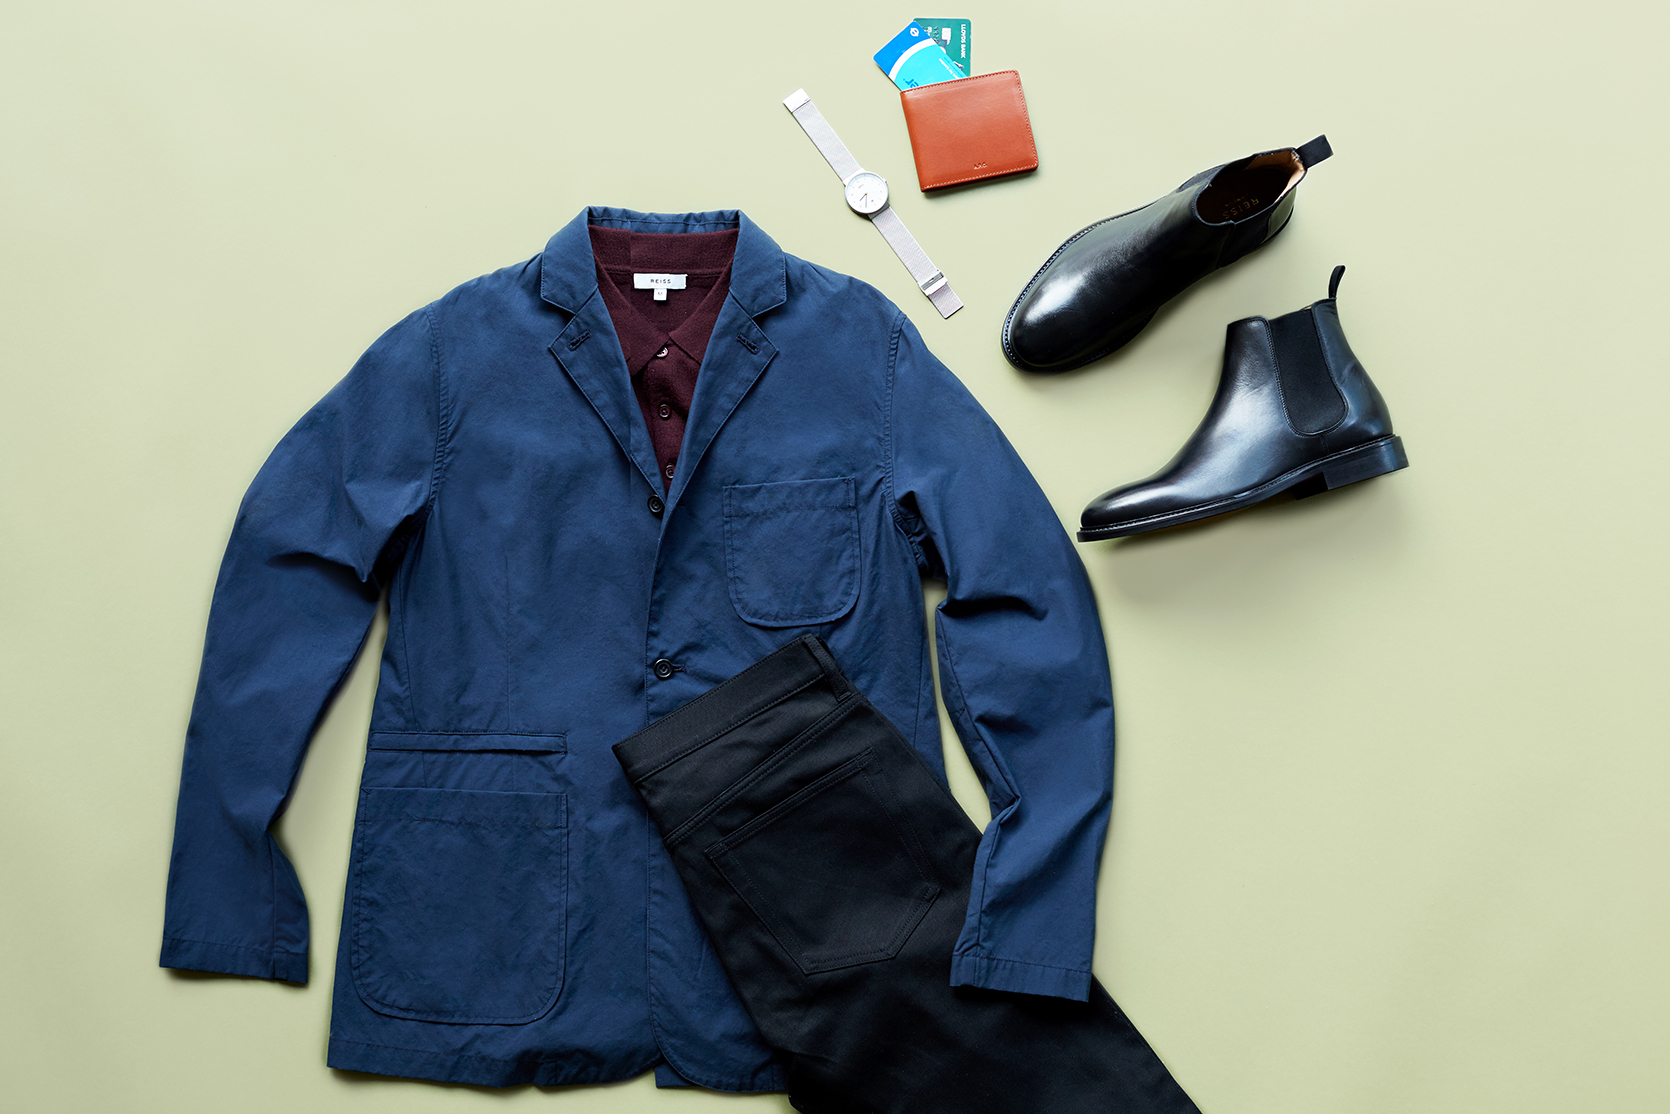 Smart-casual outfit